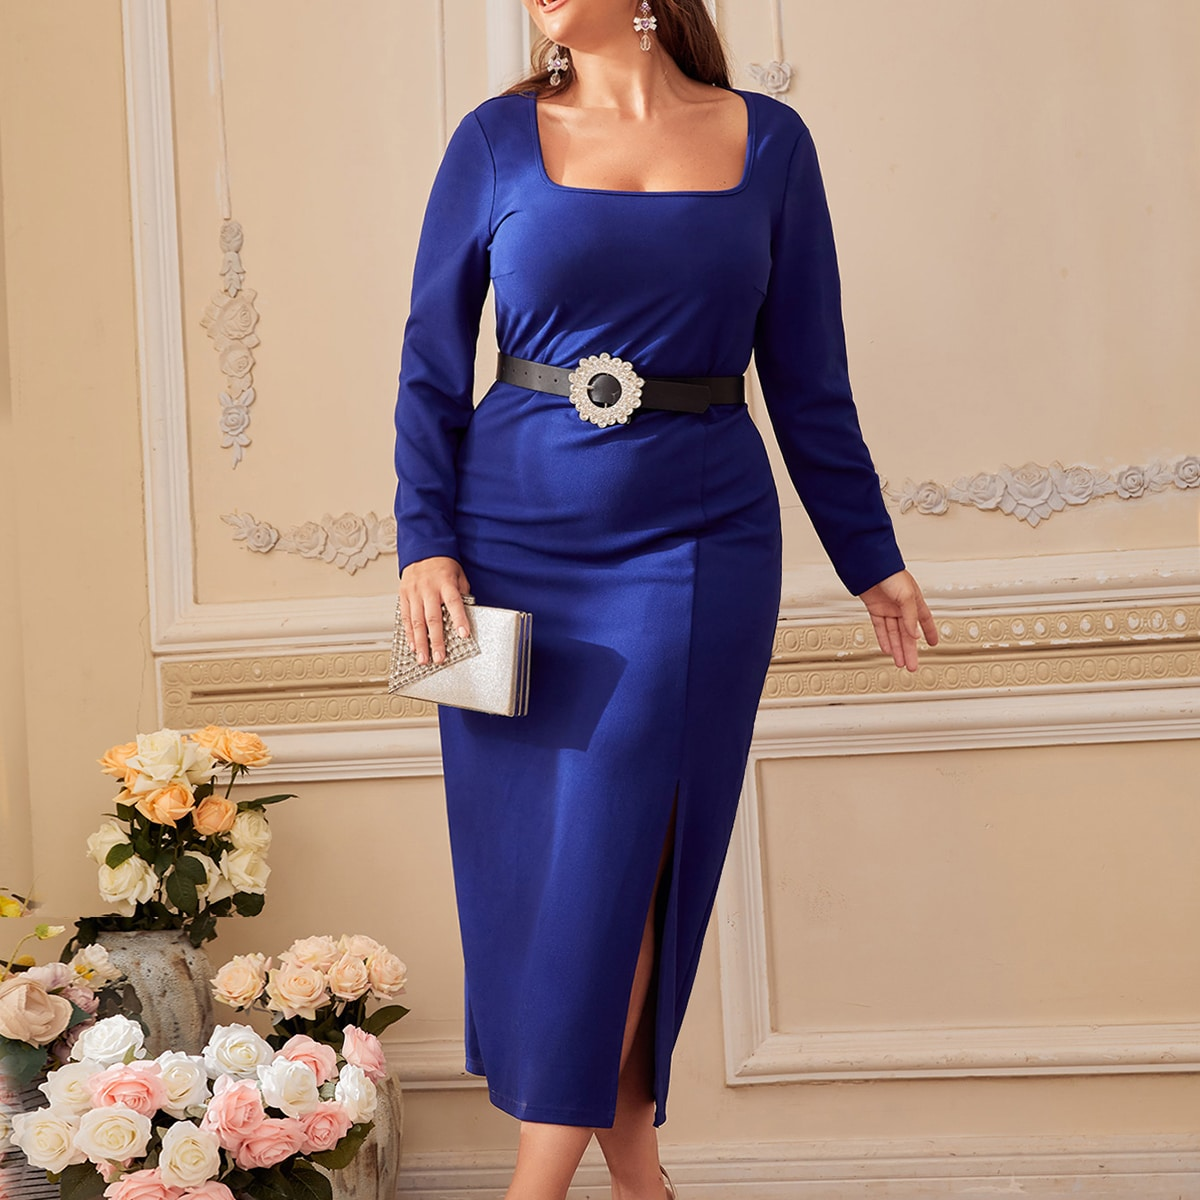 Plus Square Neck Slit Thigh Bodycon Dress Without Belt